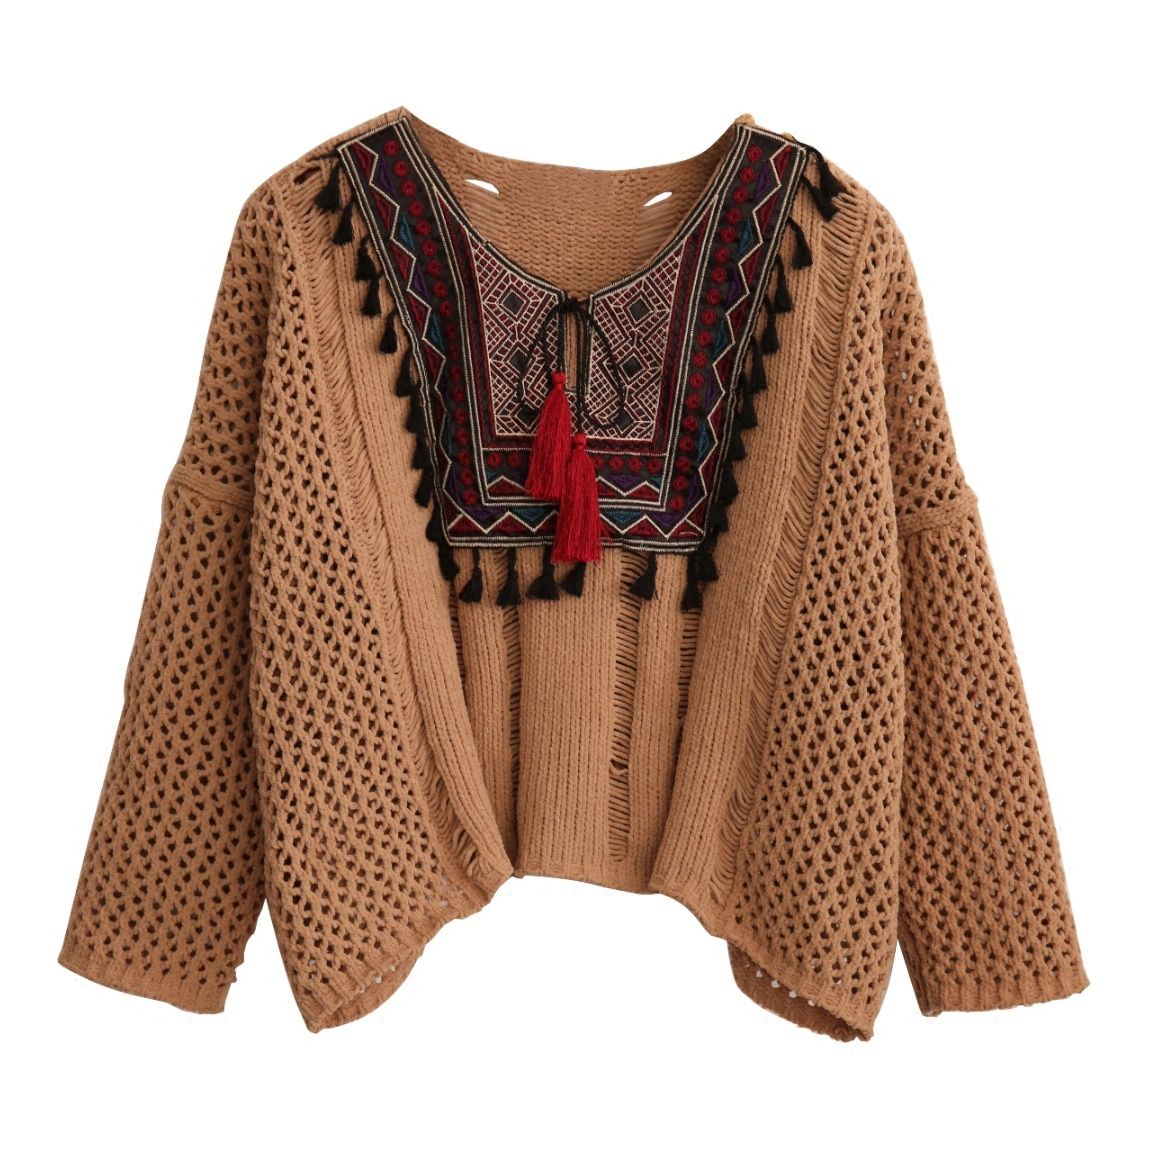 2018 Autumn Coffee color Round Neck Long Sleeve Casual Loose Sweater Tasseled Tie Embroidered Yoke Eyelet Jumper Sweater